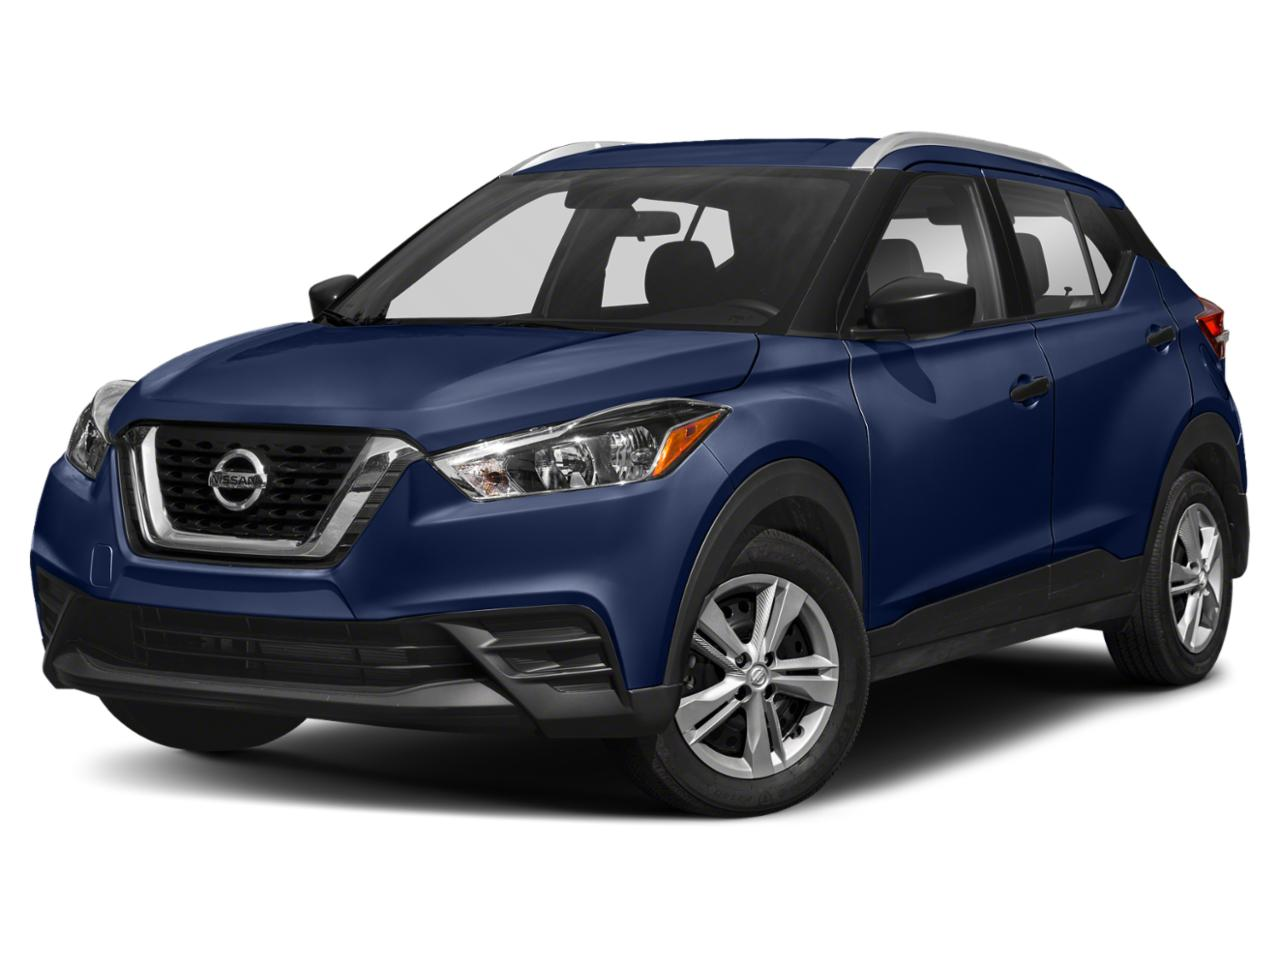 2019 Nissan Kicks Vehicle Photo in Oshkosh, WI 54904